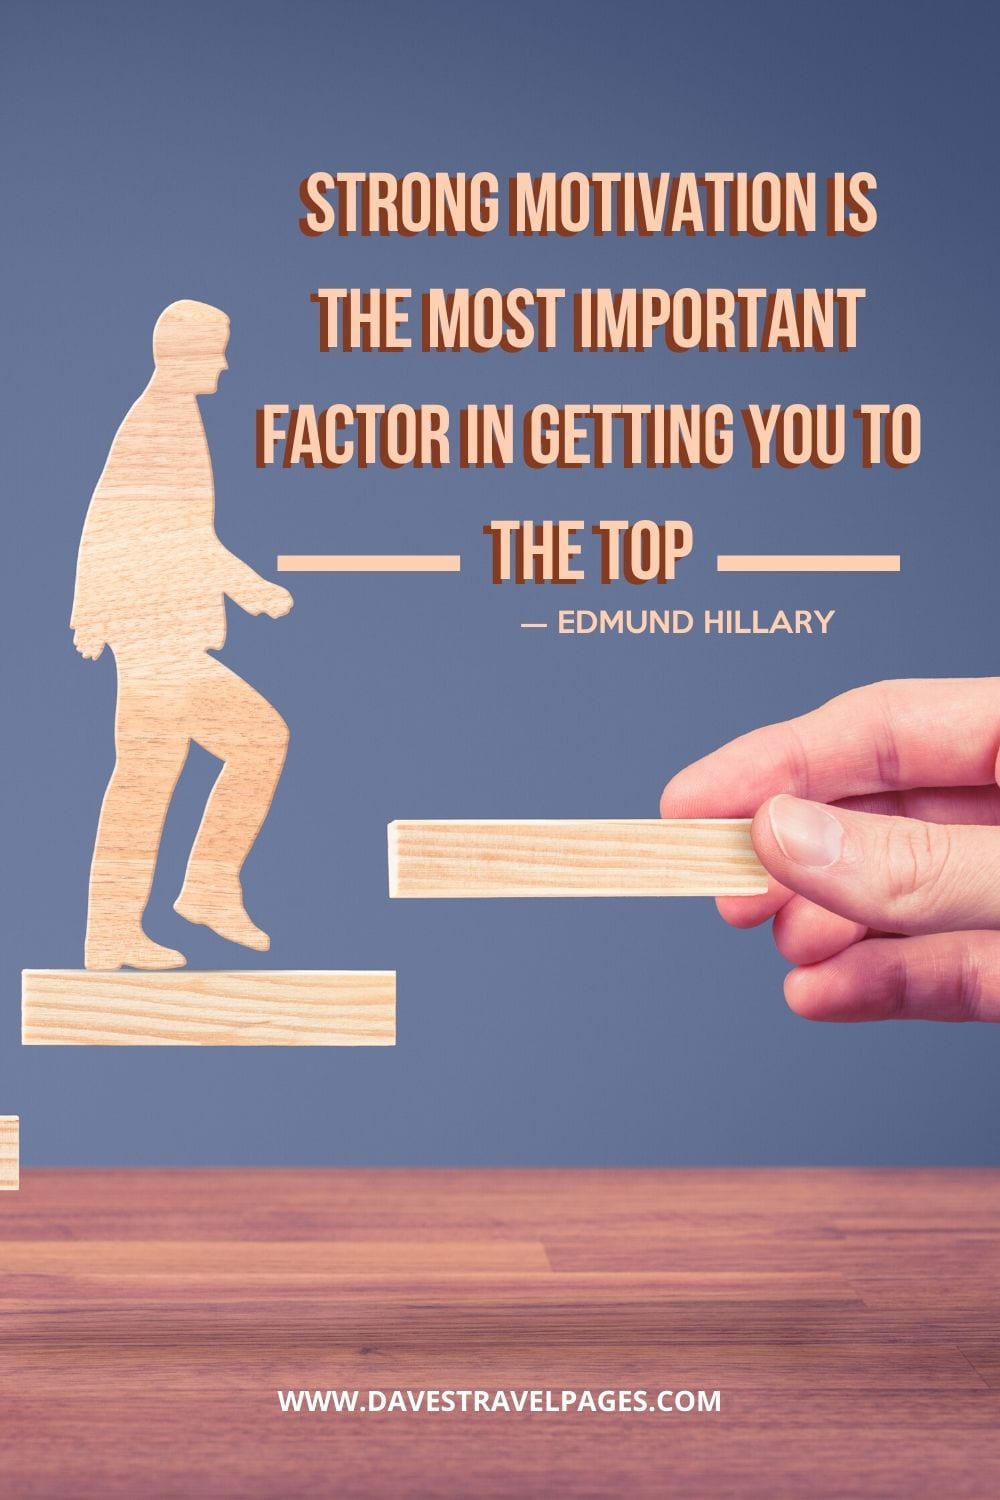 """Strong motivation is the most important factor in getting you to the top"" - Edmund Hillary"